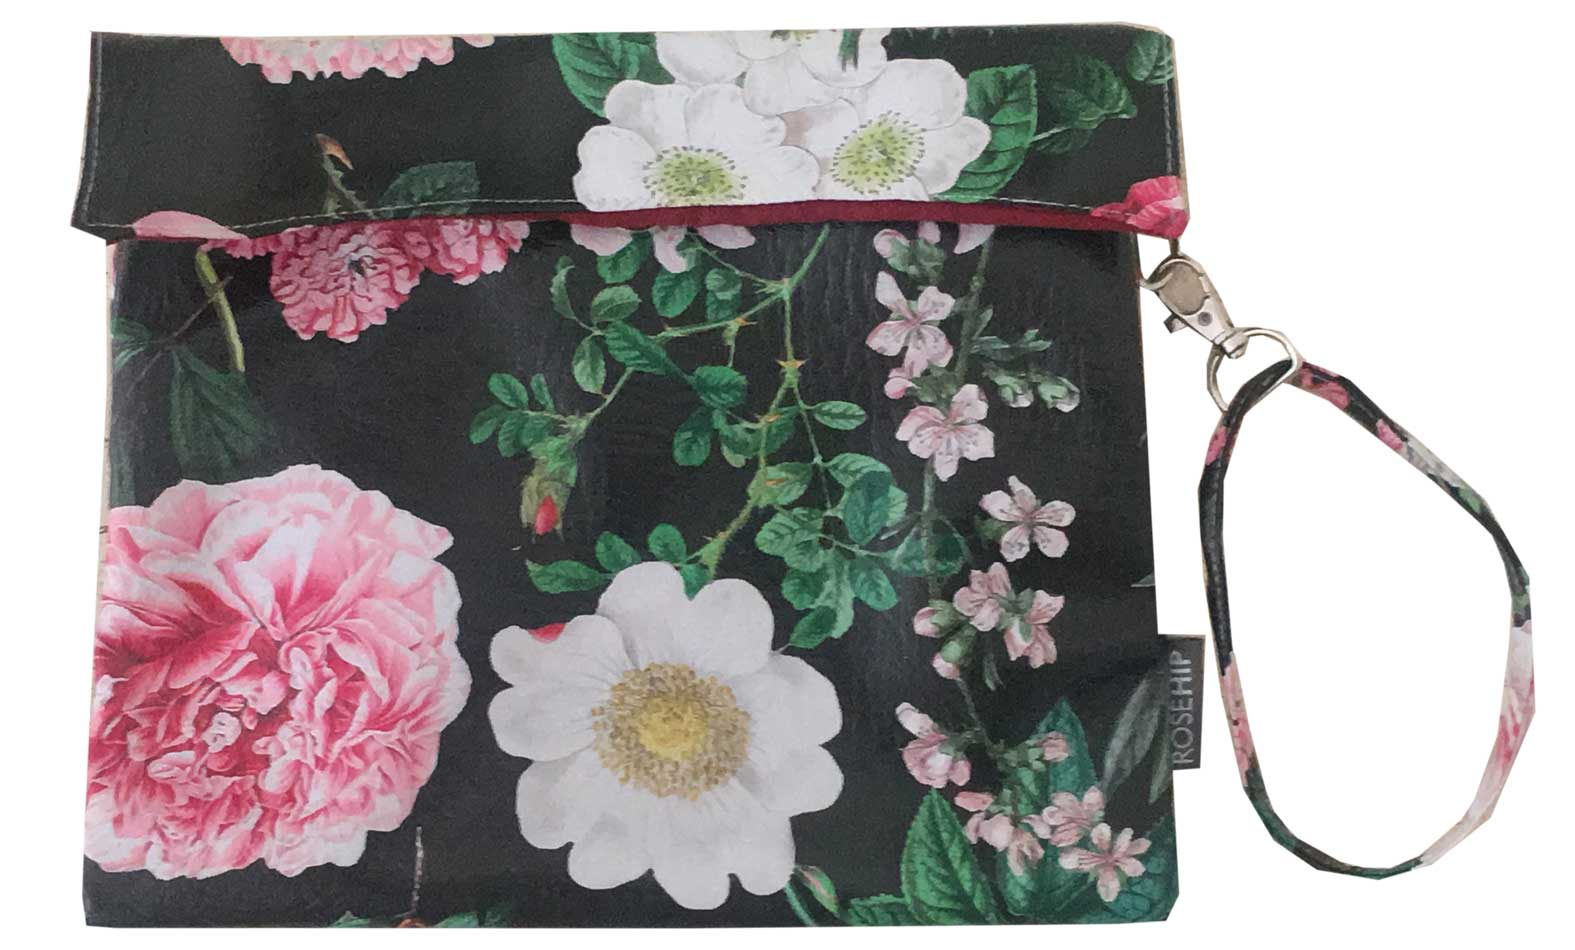 Peony Ebony design printed onto Vegan Leather. Can be used as Ipad bag or Clutch bag.